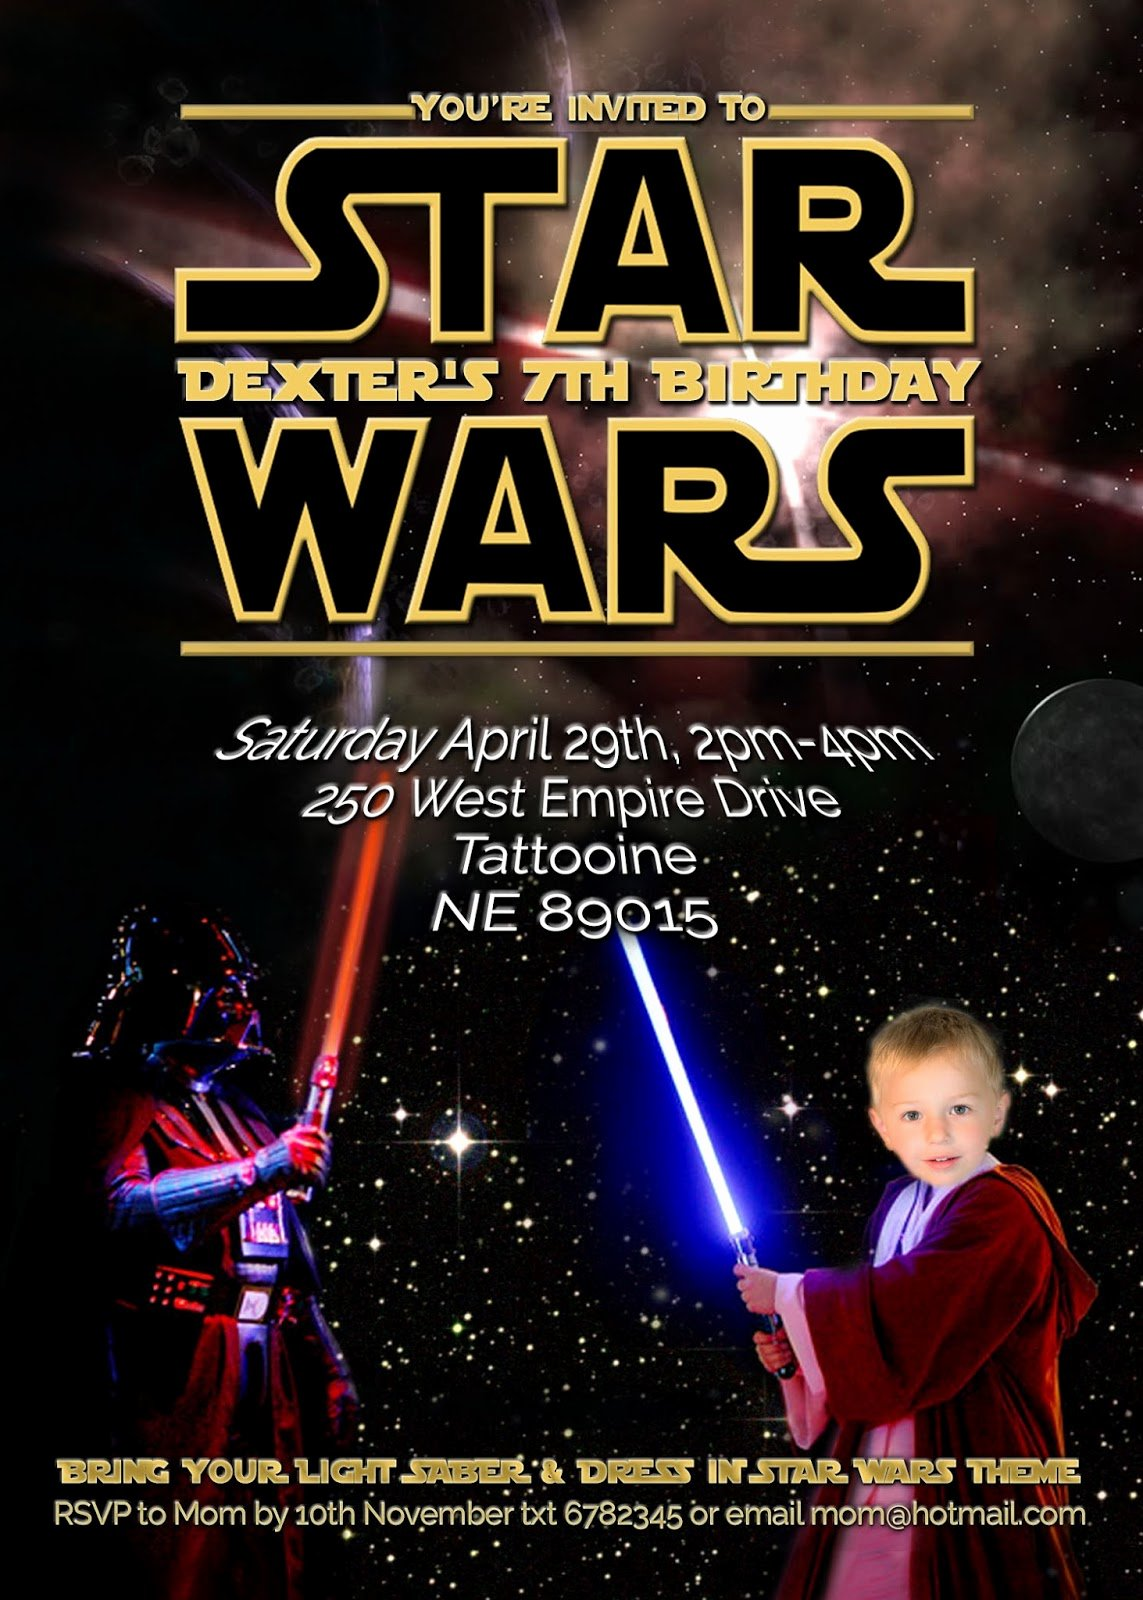 Star Wars Party Invitation Elegant Free Kids Party Invitations Star Wars Party Invitation Self Edit